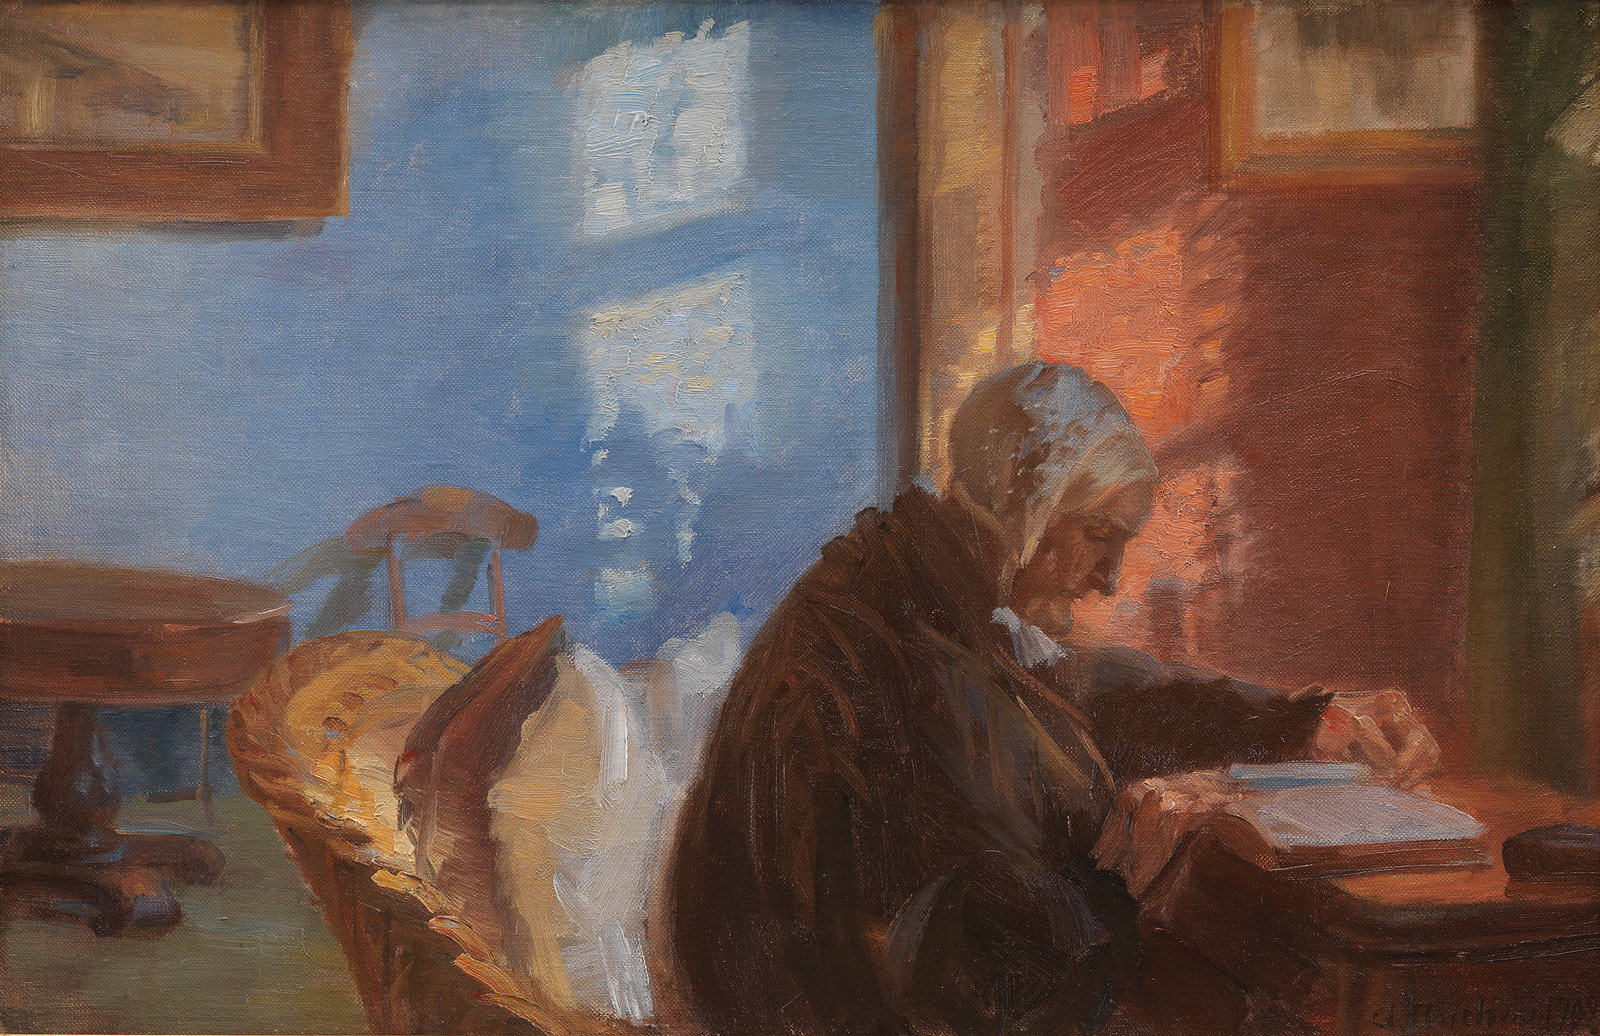 The Artist's Mother Ane Hedvig Brøndum in the Blue Room, 1909, Anna Ancher, National Gallery of Denmark, CC0